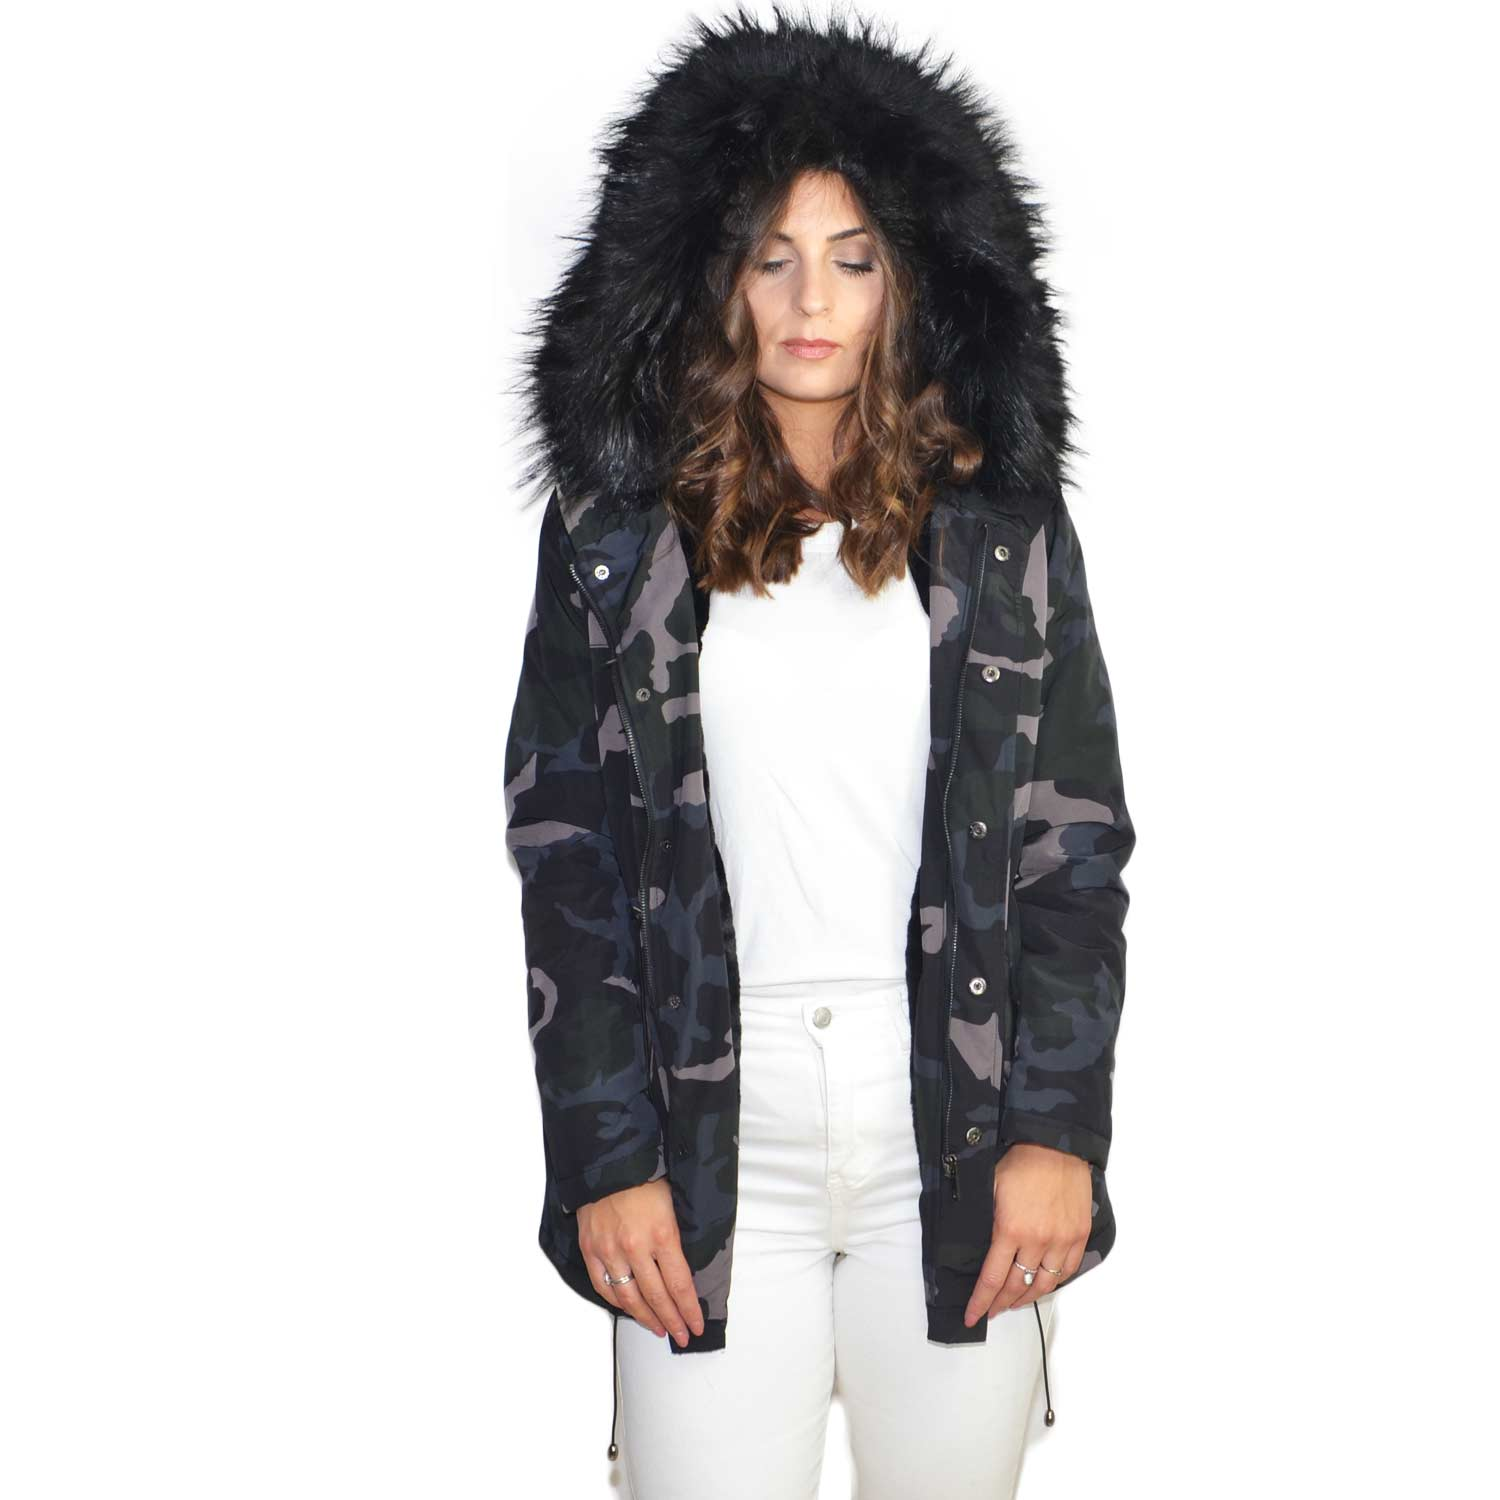 the latest 12c3d 70d98 Parka giacca donna invernale impermeabile camouflage con pelliccia nera  ecologica voluminosa marchio k-zell donna parka k-zell | MaluShoes